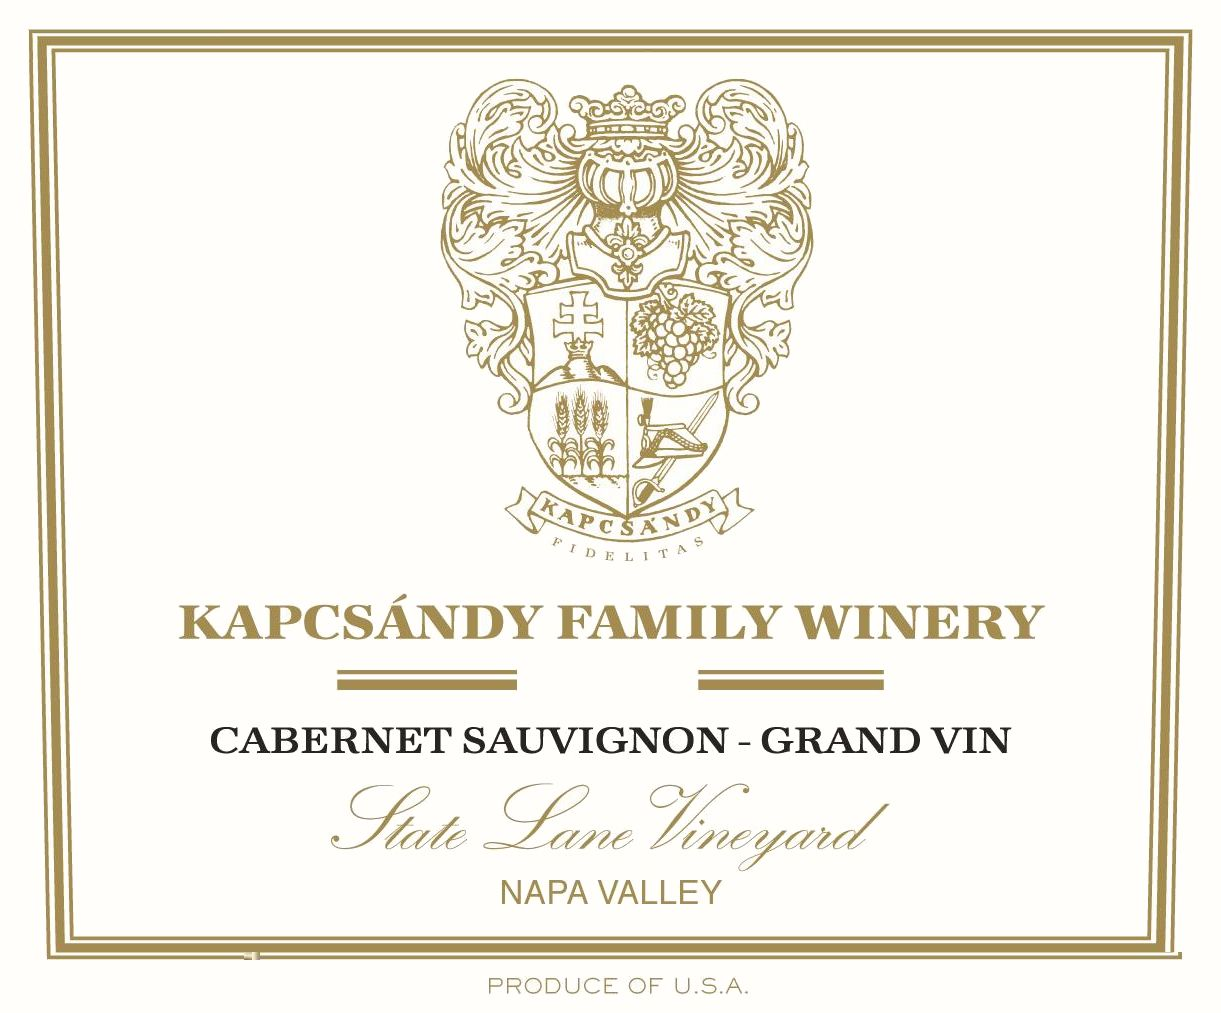 Kapcsandy Family Winery State Lane Cabernet Sauvignon Grand Vin 2016  Front Label